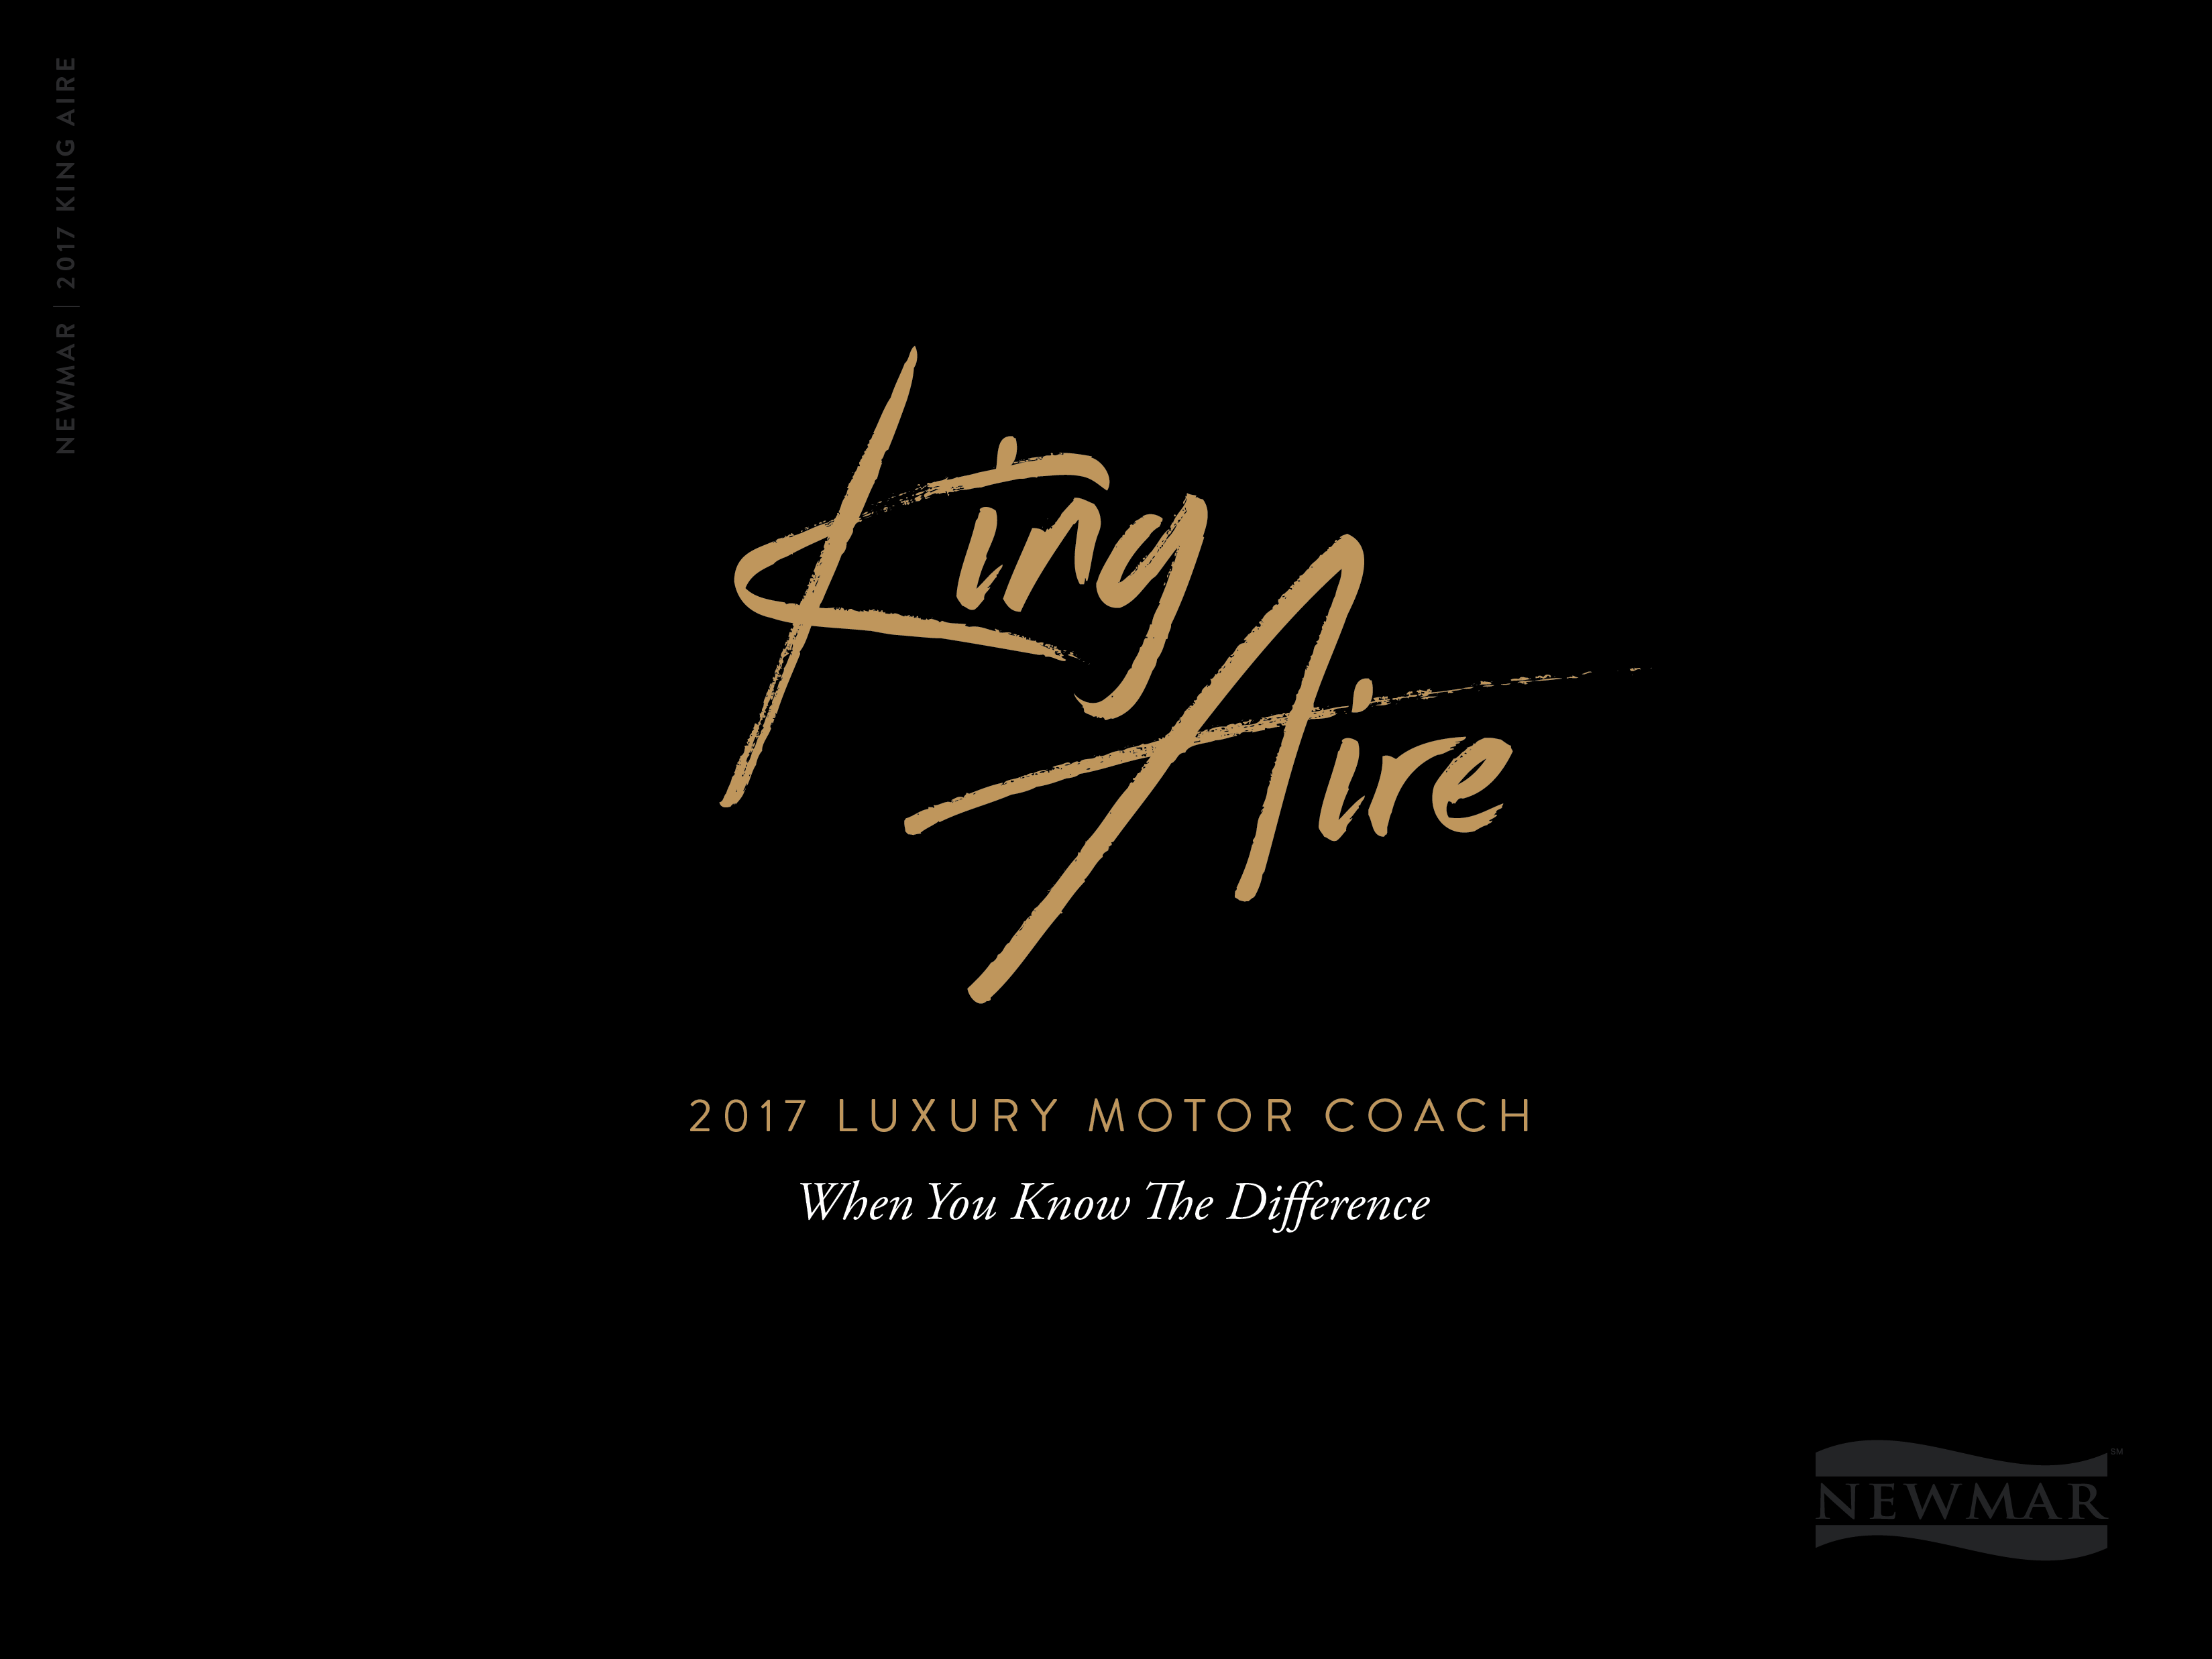 2017 King Aire